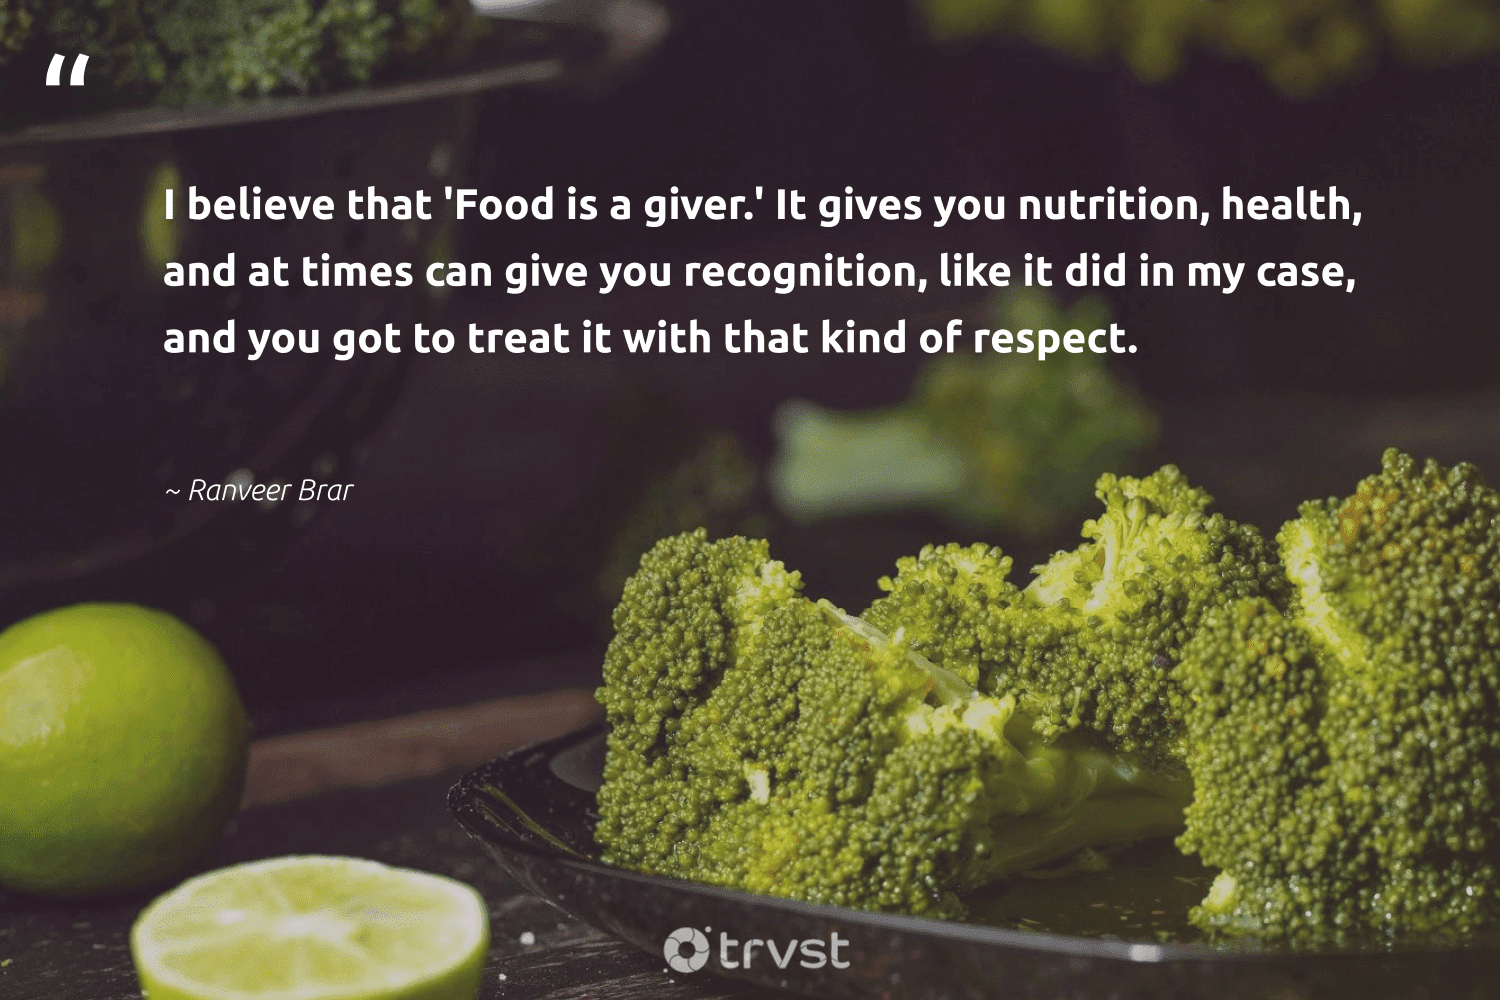 """""""I believe that 'Food is a giver.' It gives you nutrition, health, and at times can give you recognition, like it did in my case, and you got to treat it with that kind of respect.""""  - Ranveer Brar #trvst #quotes #food #health #nutrition #foodforthepoor #nevergiveup #equalopportunity #takeaction #hunger #mindset #equalrights"""